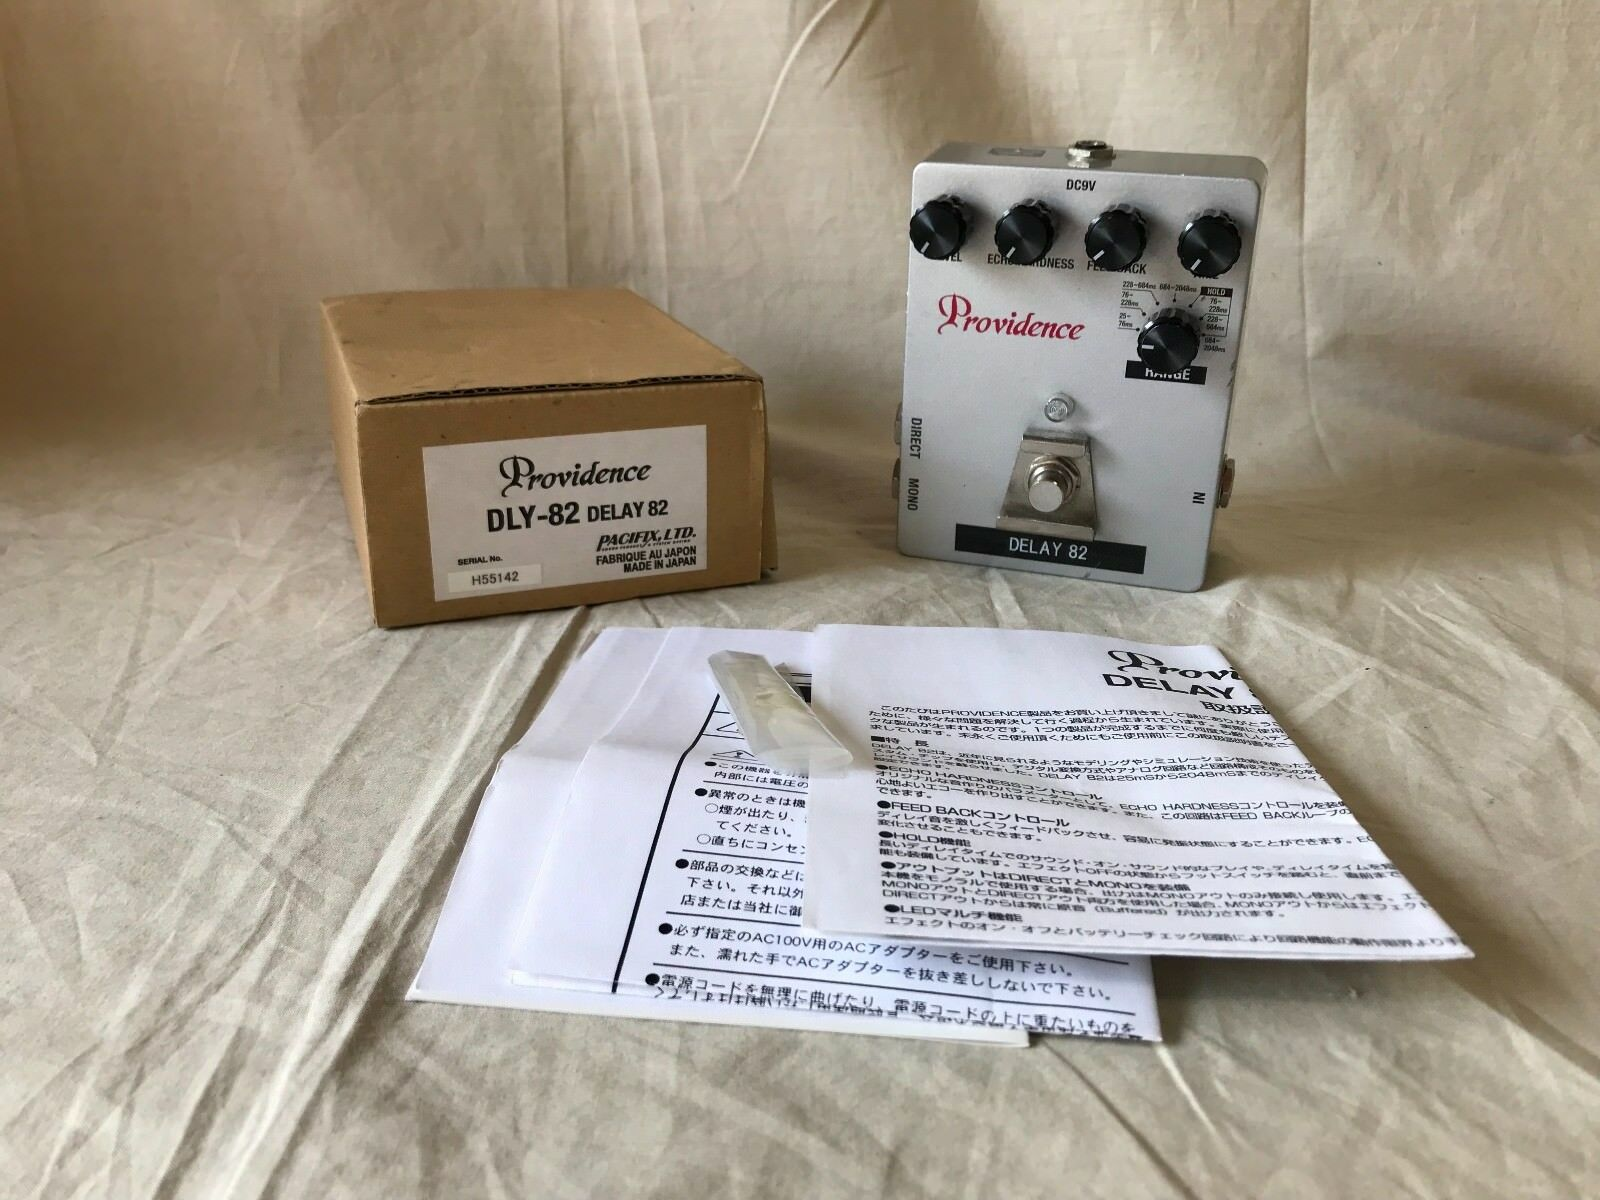 Providence DELAY 82 DLY-82 very rare pedal   made in Japan w  box